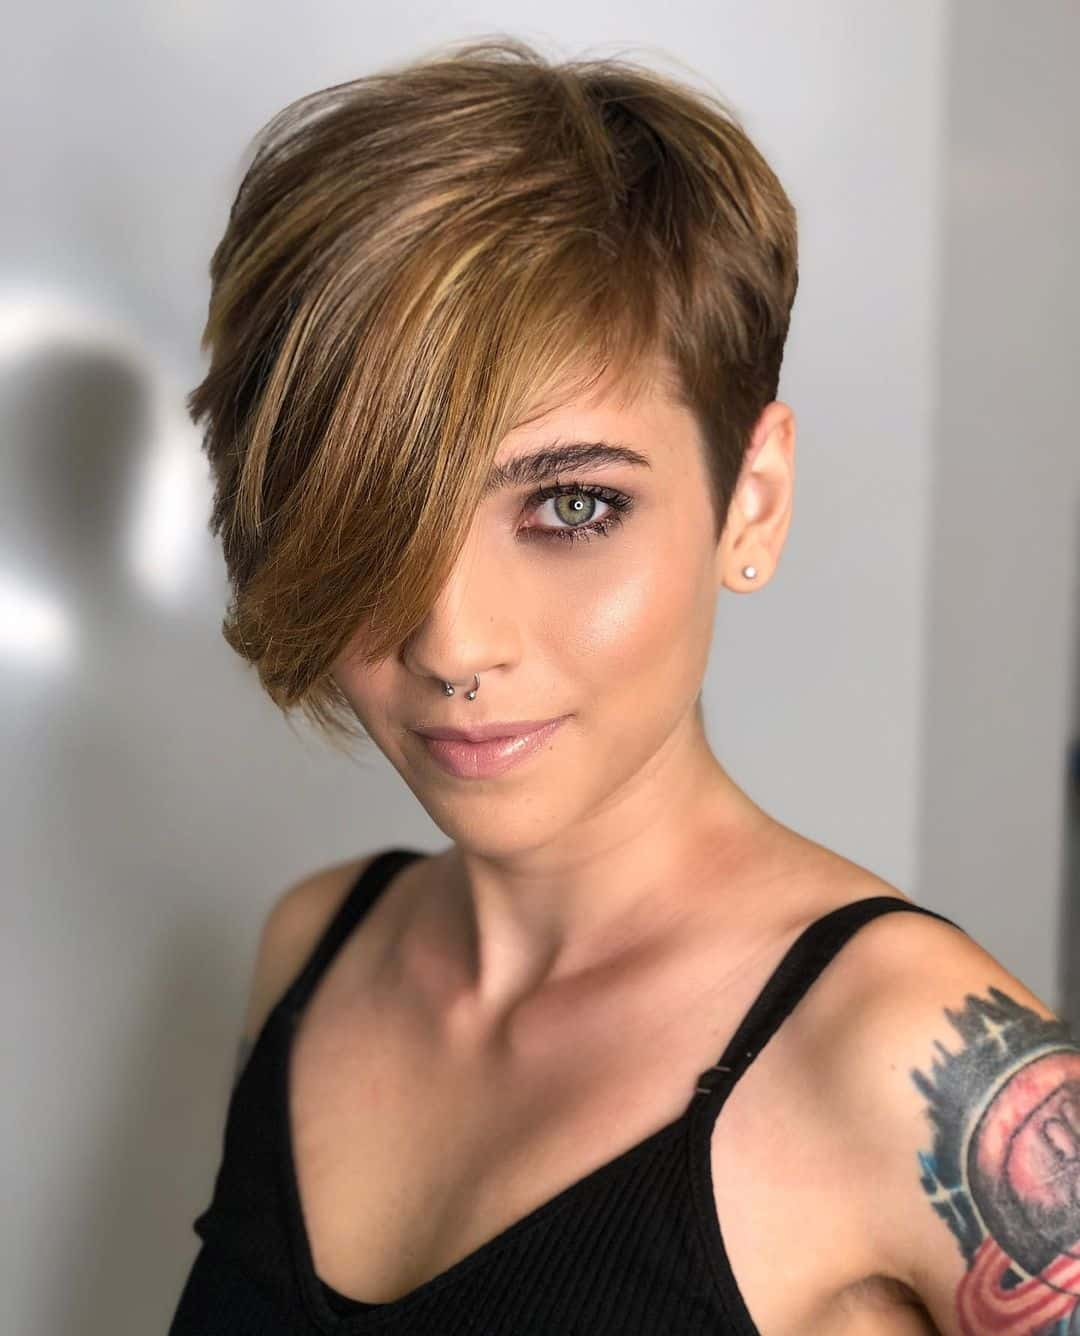 The 46 Best Short Hairstyles for Thin Hair to Look Fuller